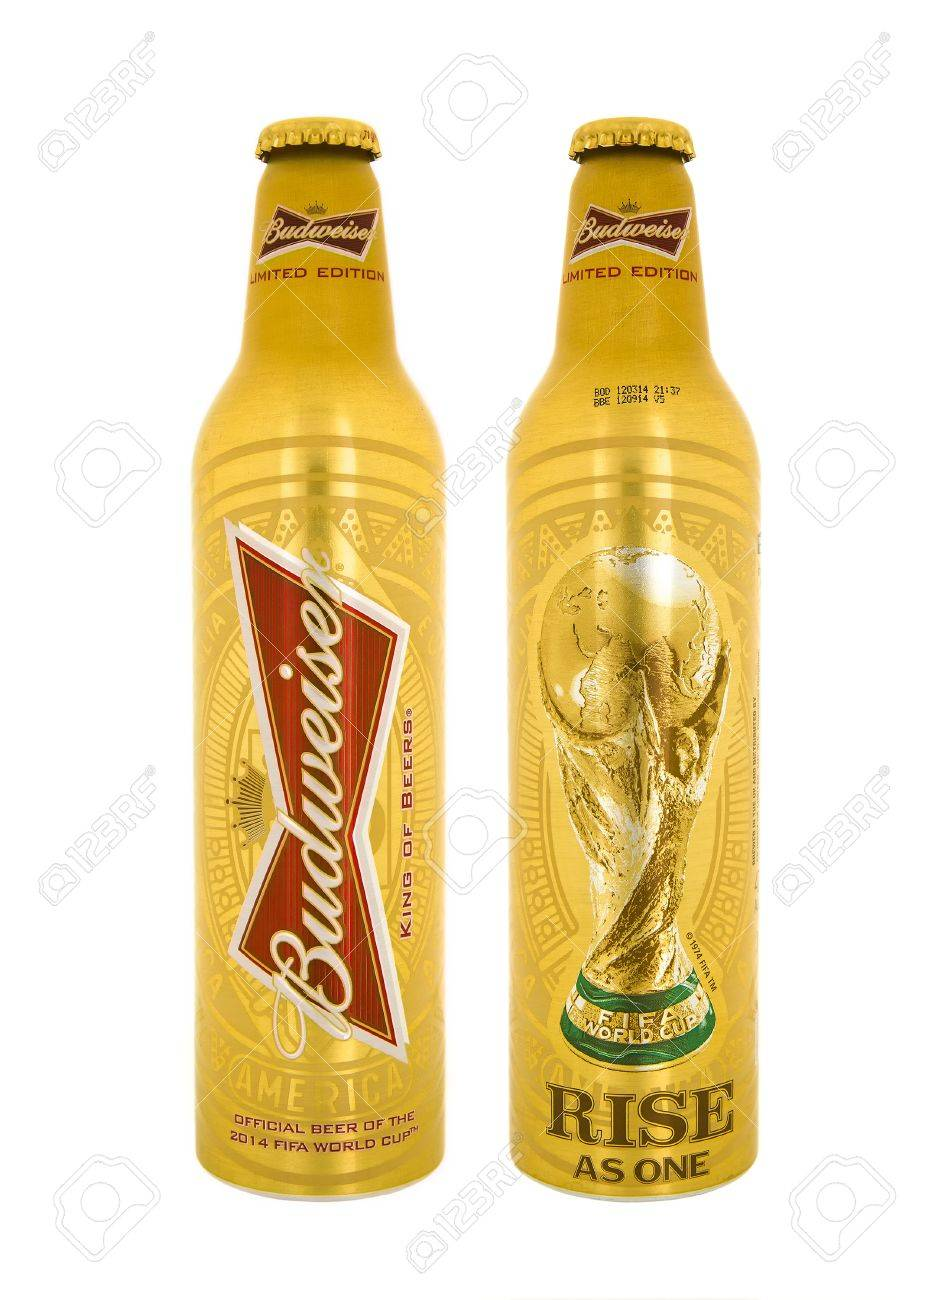 Good Budweiser World Cup 2018 - 28165002-swindon-uk-may-3-2014-bottle-of-limited-edition-budweiser-beer-made-for-the-2014-fifa-football-world  Graphic_381069 .jpg